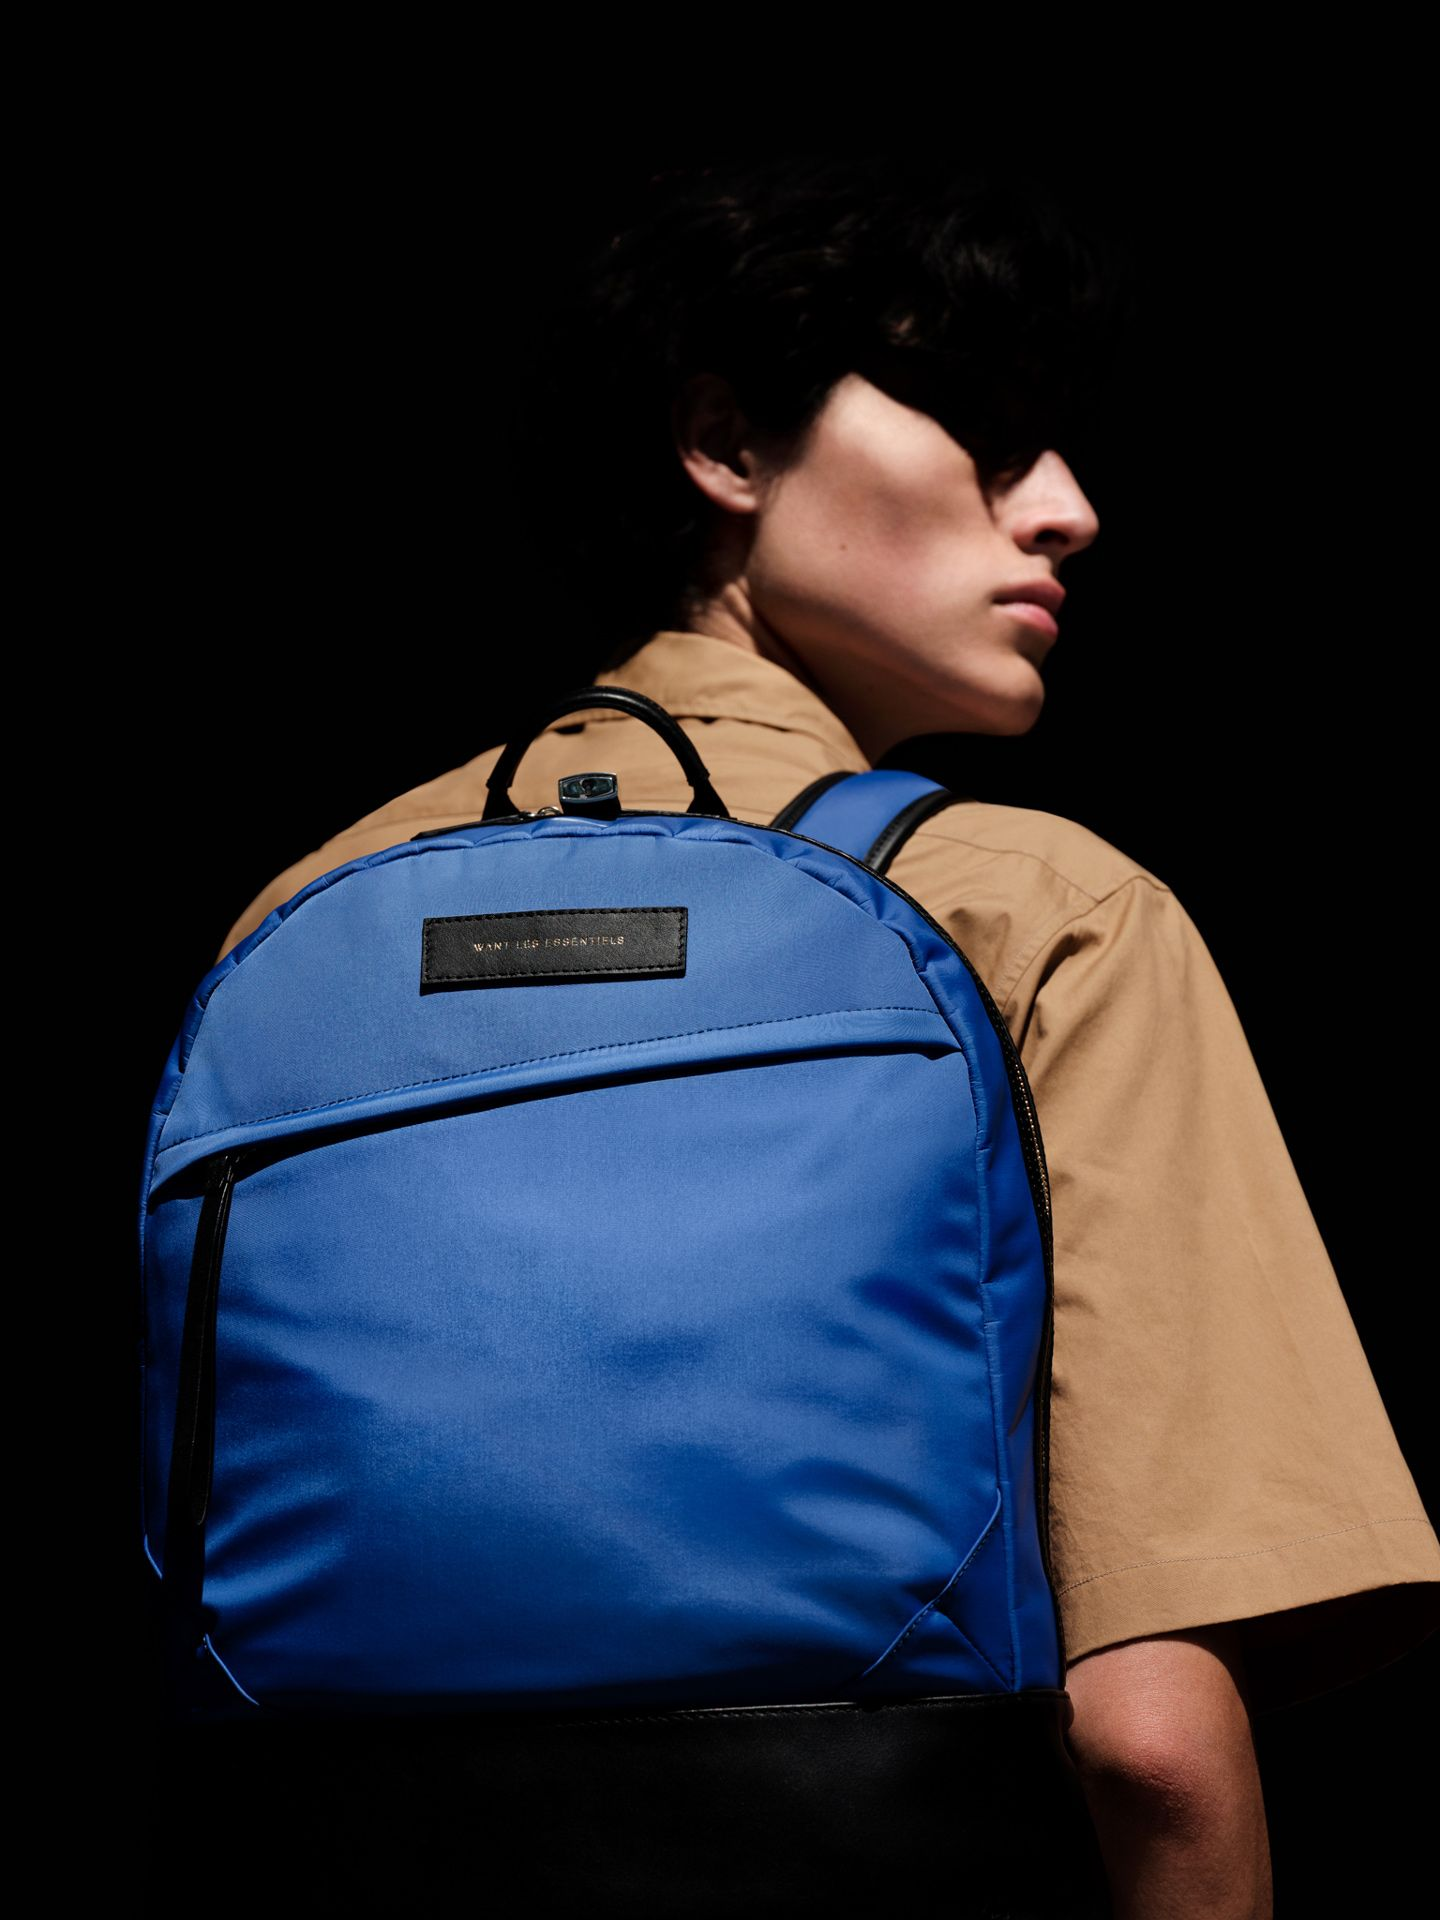 model wearing beige shirt and bright blue backpack photographed by Alexi Hobbs for Want Les Essentiels pre-Autumn Winter 2019 collection